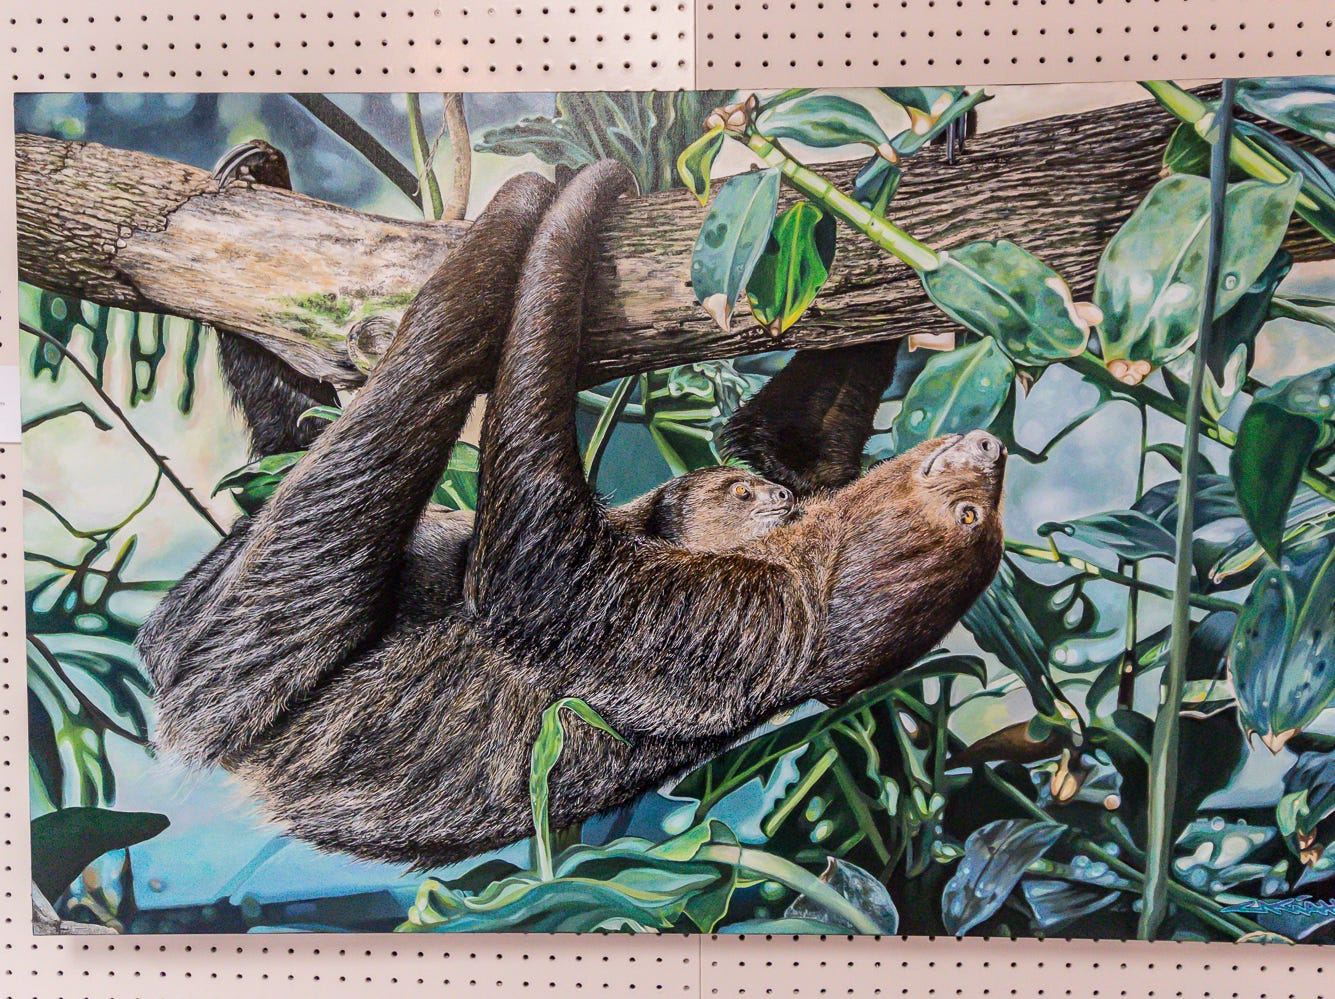 """Sloth,"" a 30""x48"" acrylic painting by Freddy Myers, is among over one hundred pieces on display in the Fine Arts Exhibition at the Pensacola Interstate Fair on Wednesday, October 17, 2018."